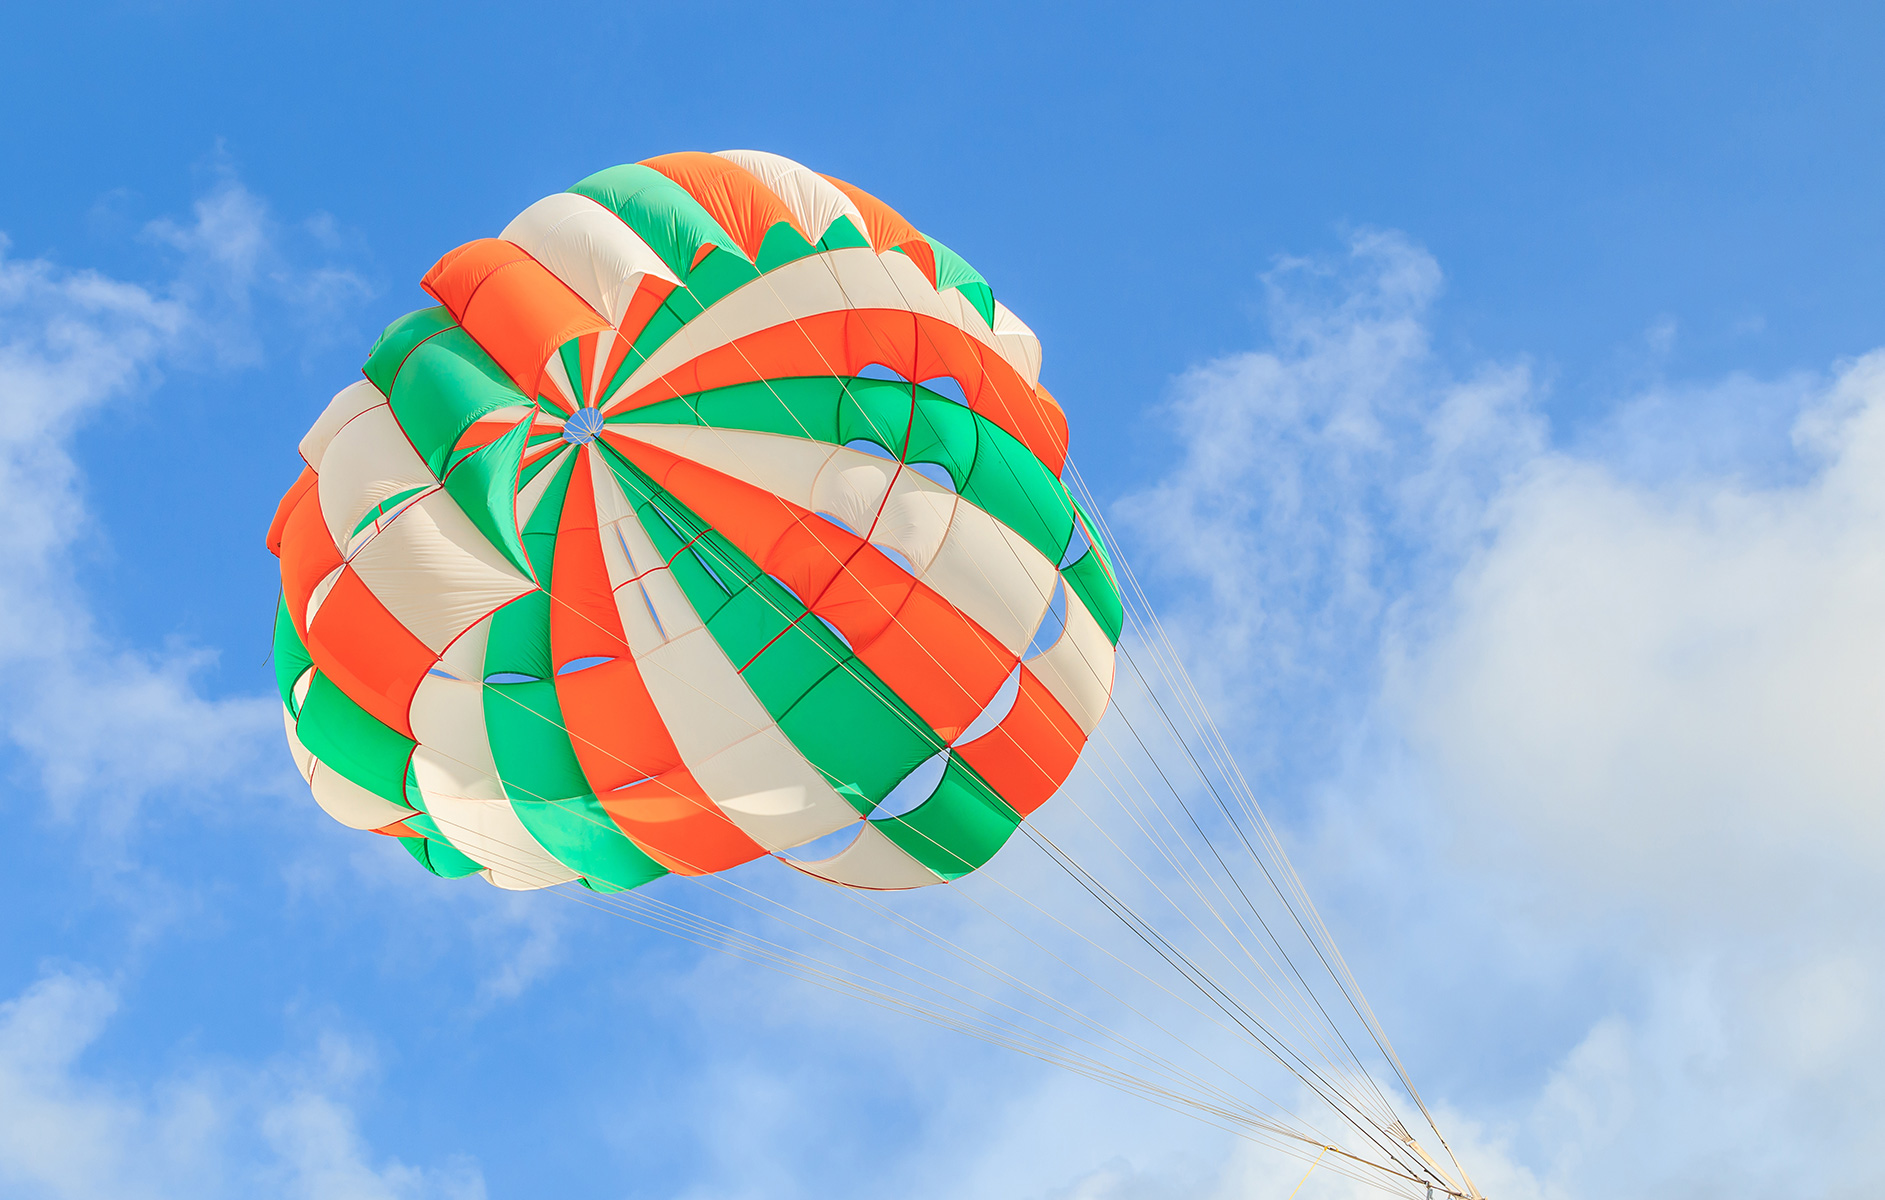 Orange, green, and white parasail against a blue sky.